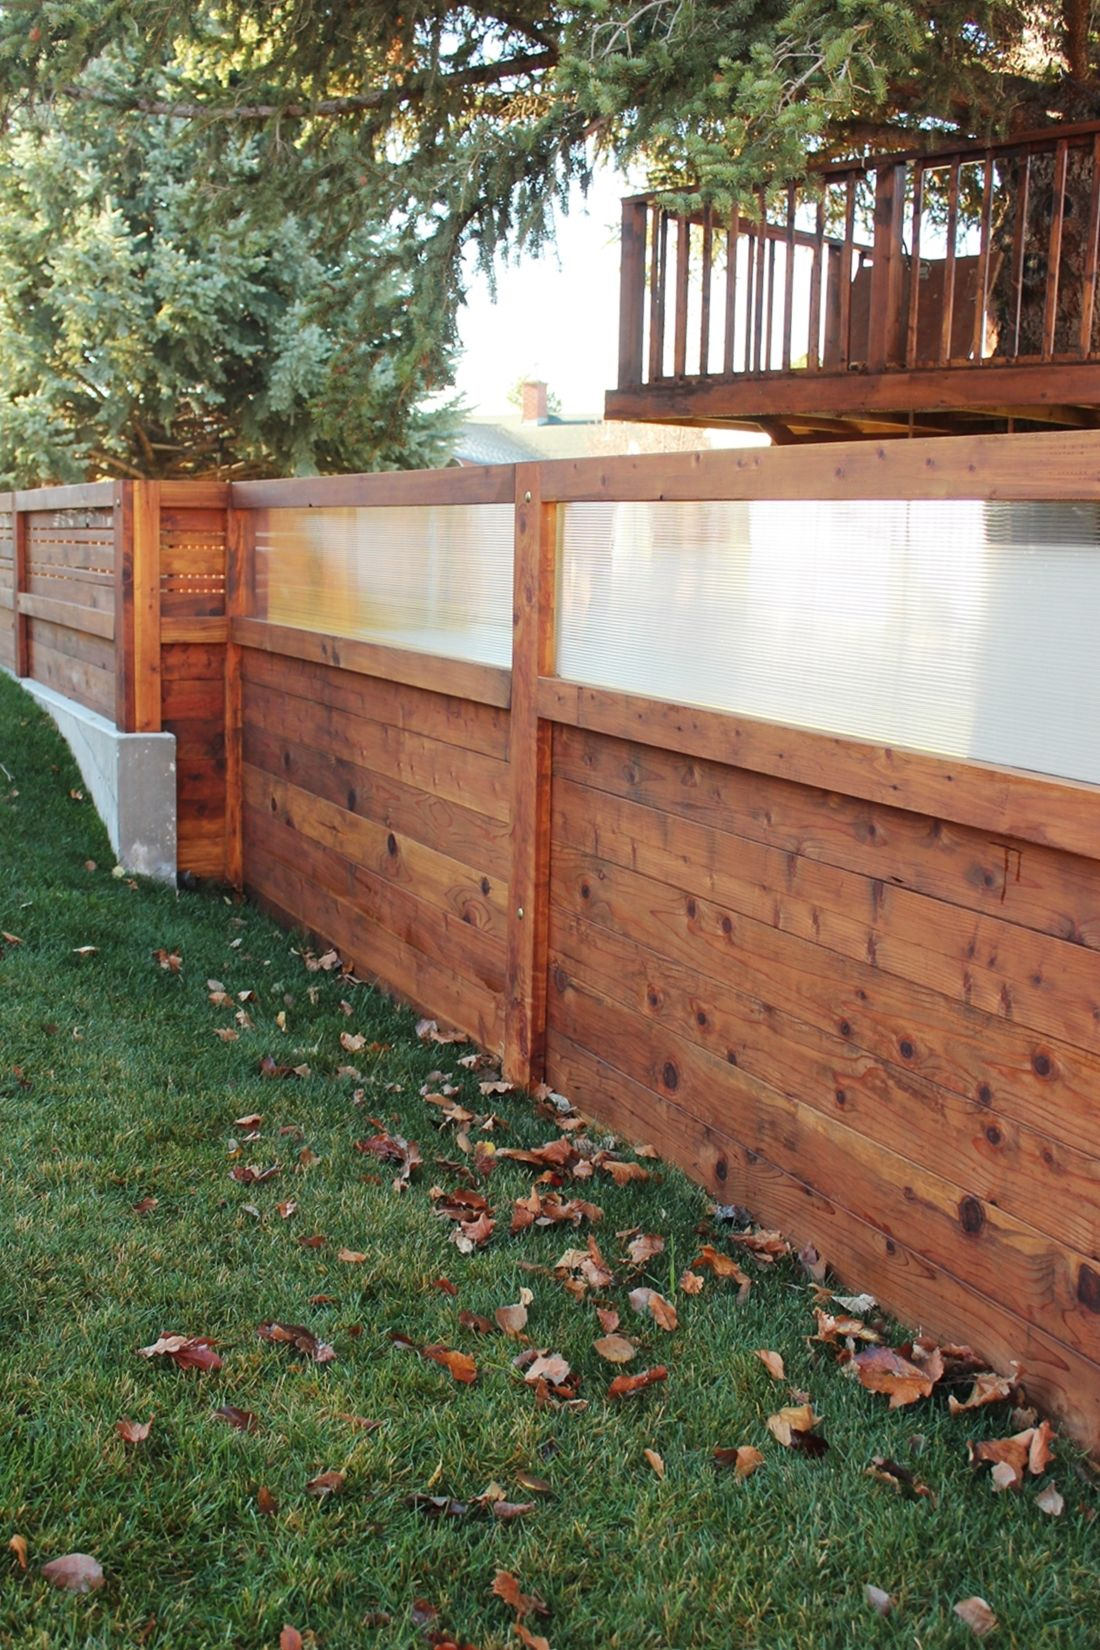 Curb Appeal - solid design into your backyard